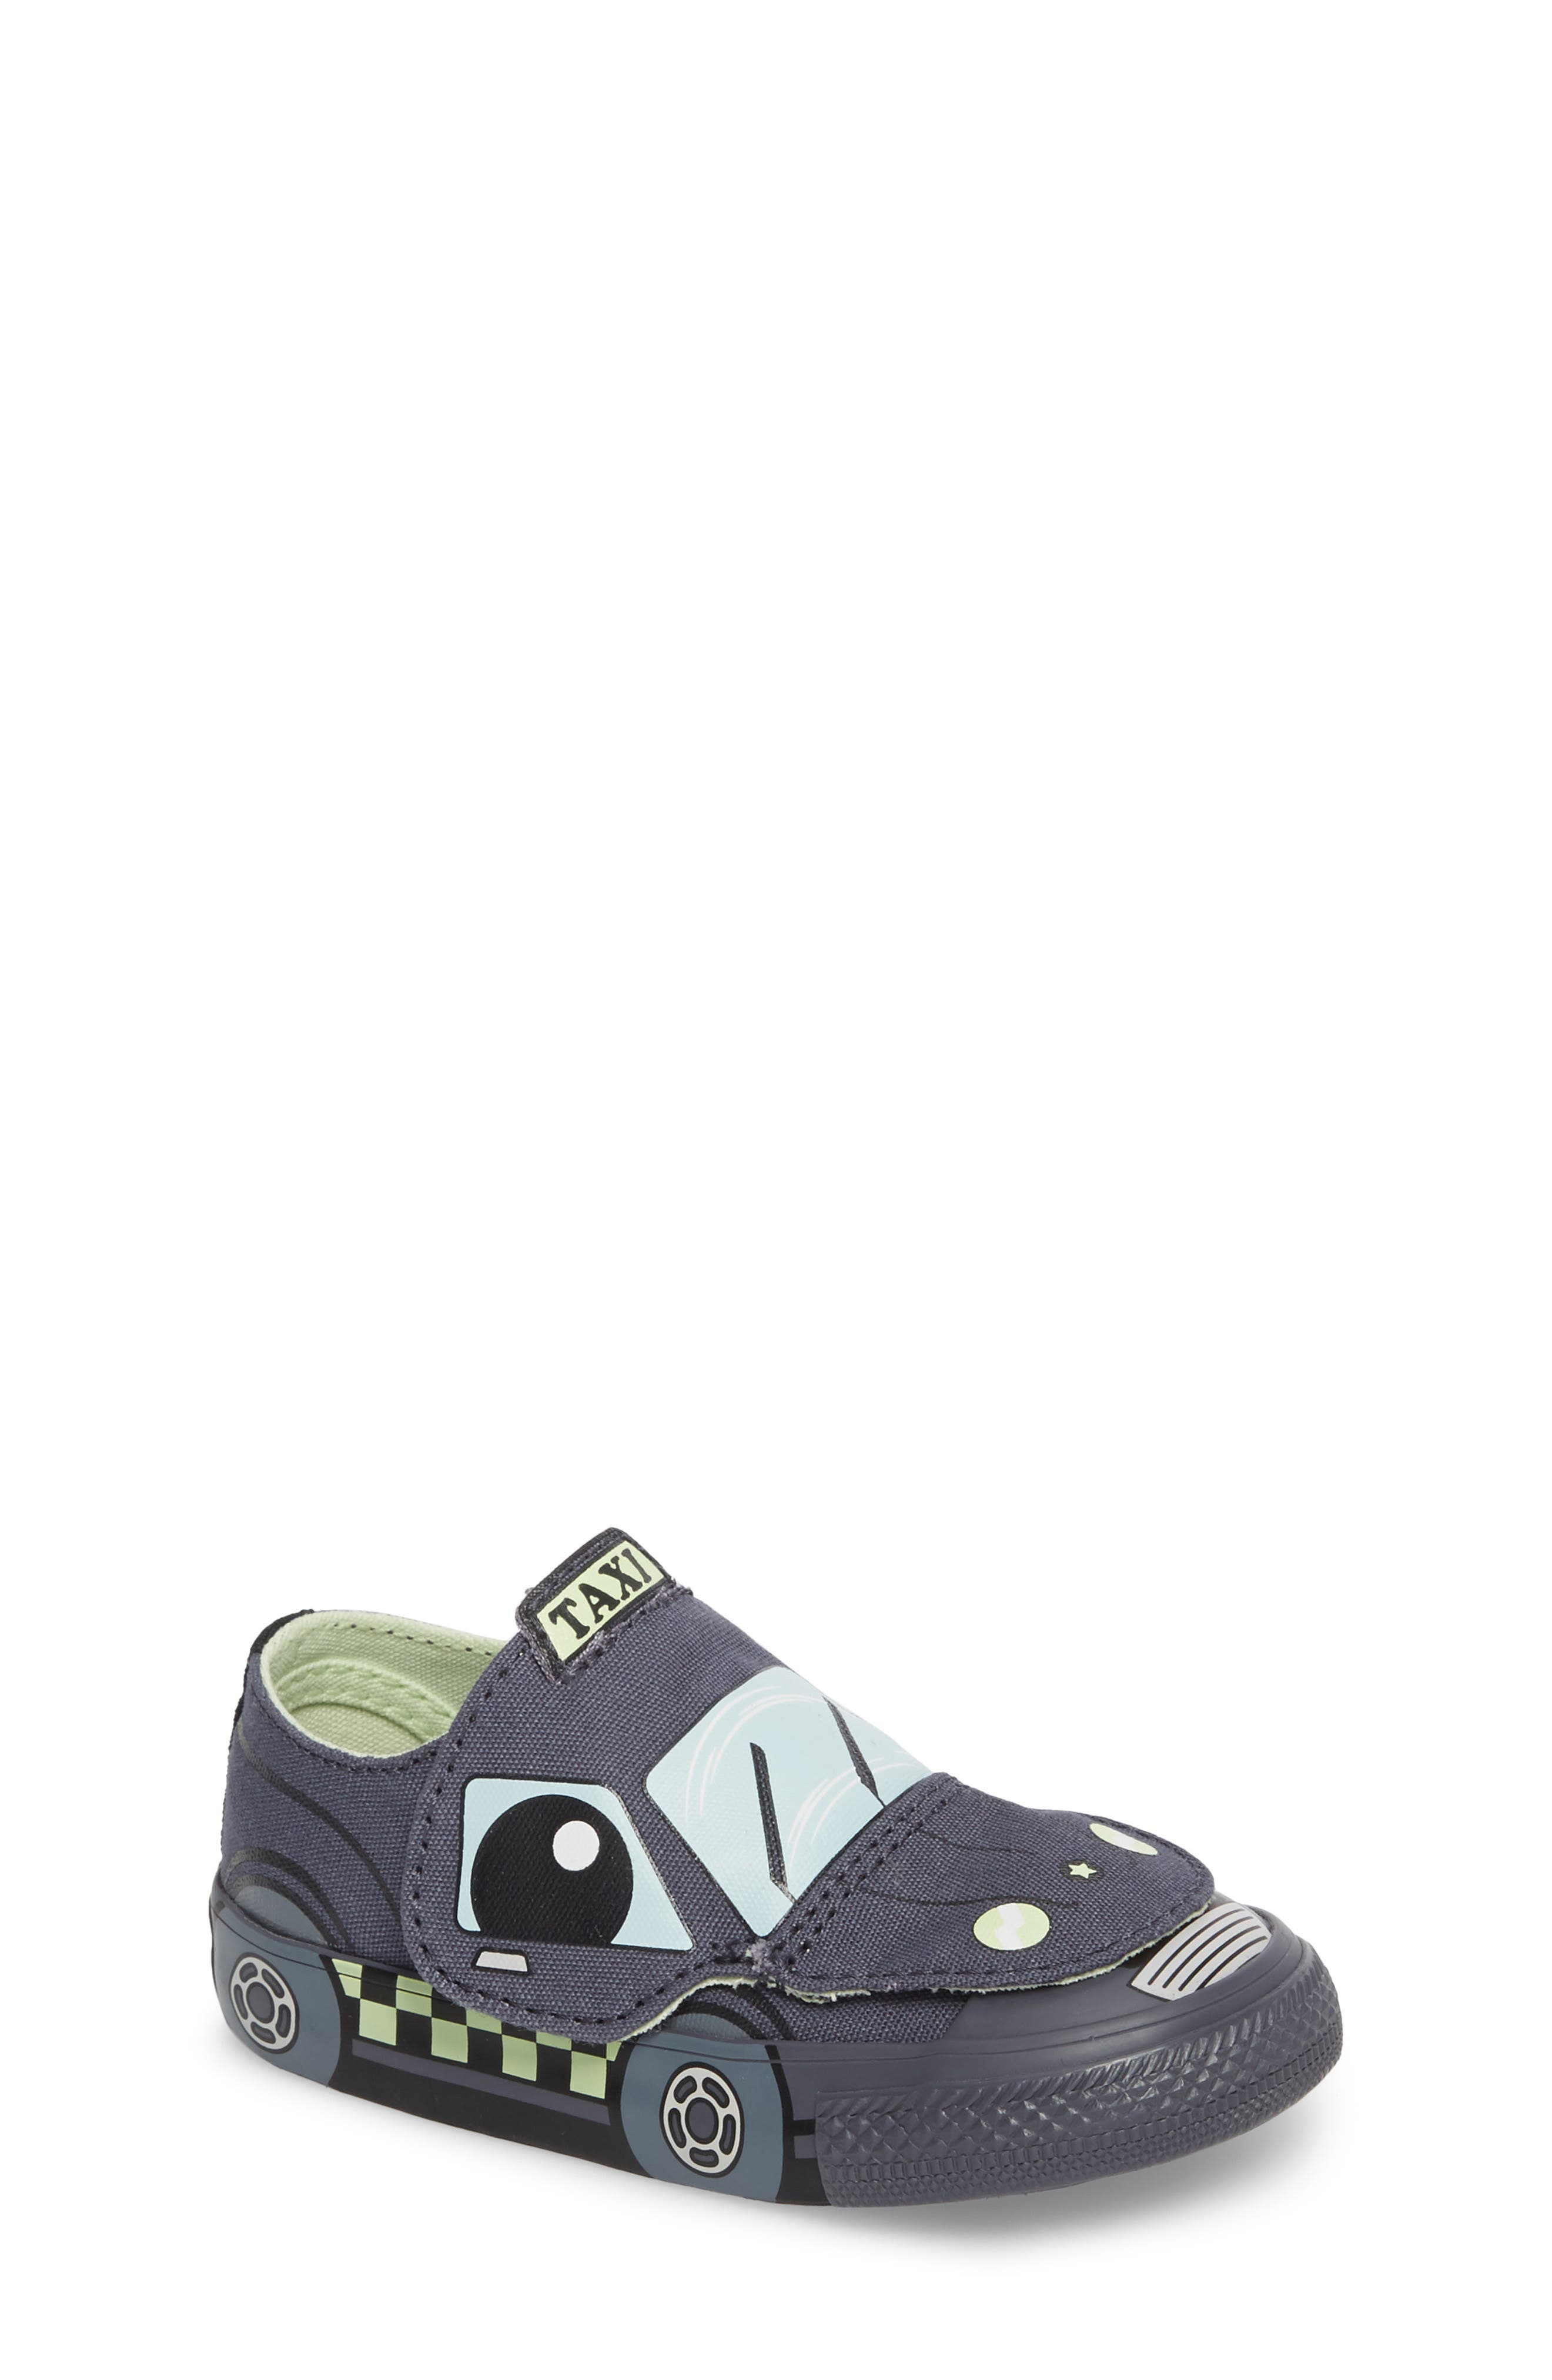 Chuck Taylor<sup>®</sup> All Star<sup>®</sup> Creatures Slip-On Sneaker,                             Main thumbnail 2, color,